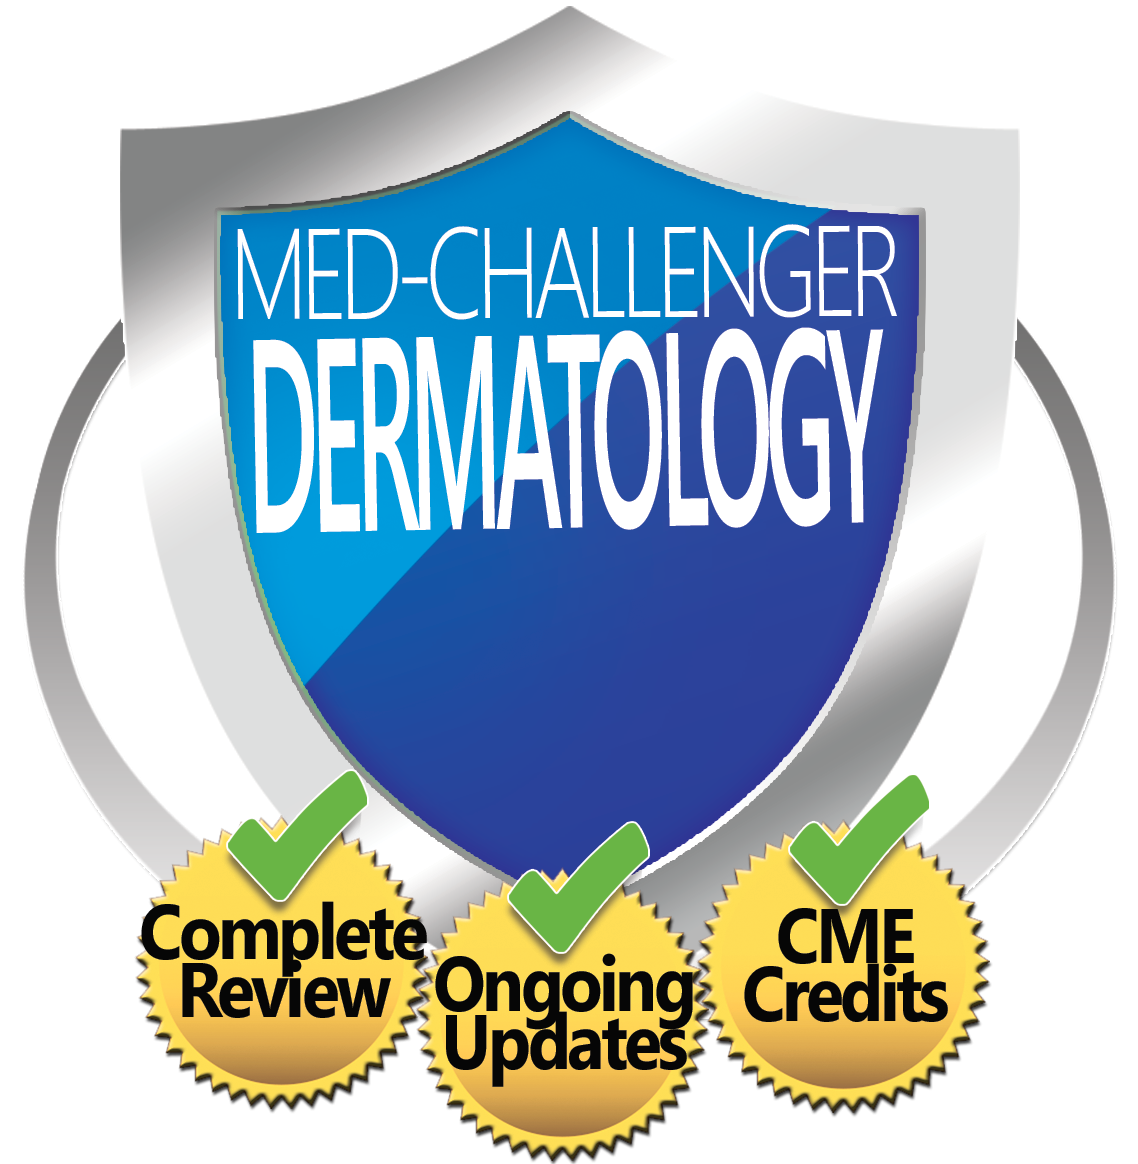 Dermatology Skills Review, Med-Challenger Dermatology, Complete Review, Ongoing Updates, CME Credits